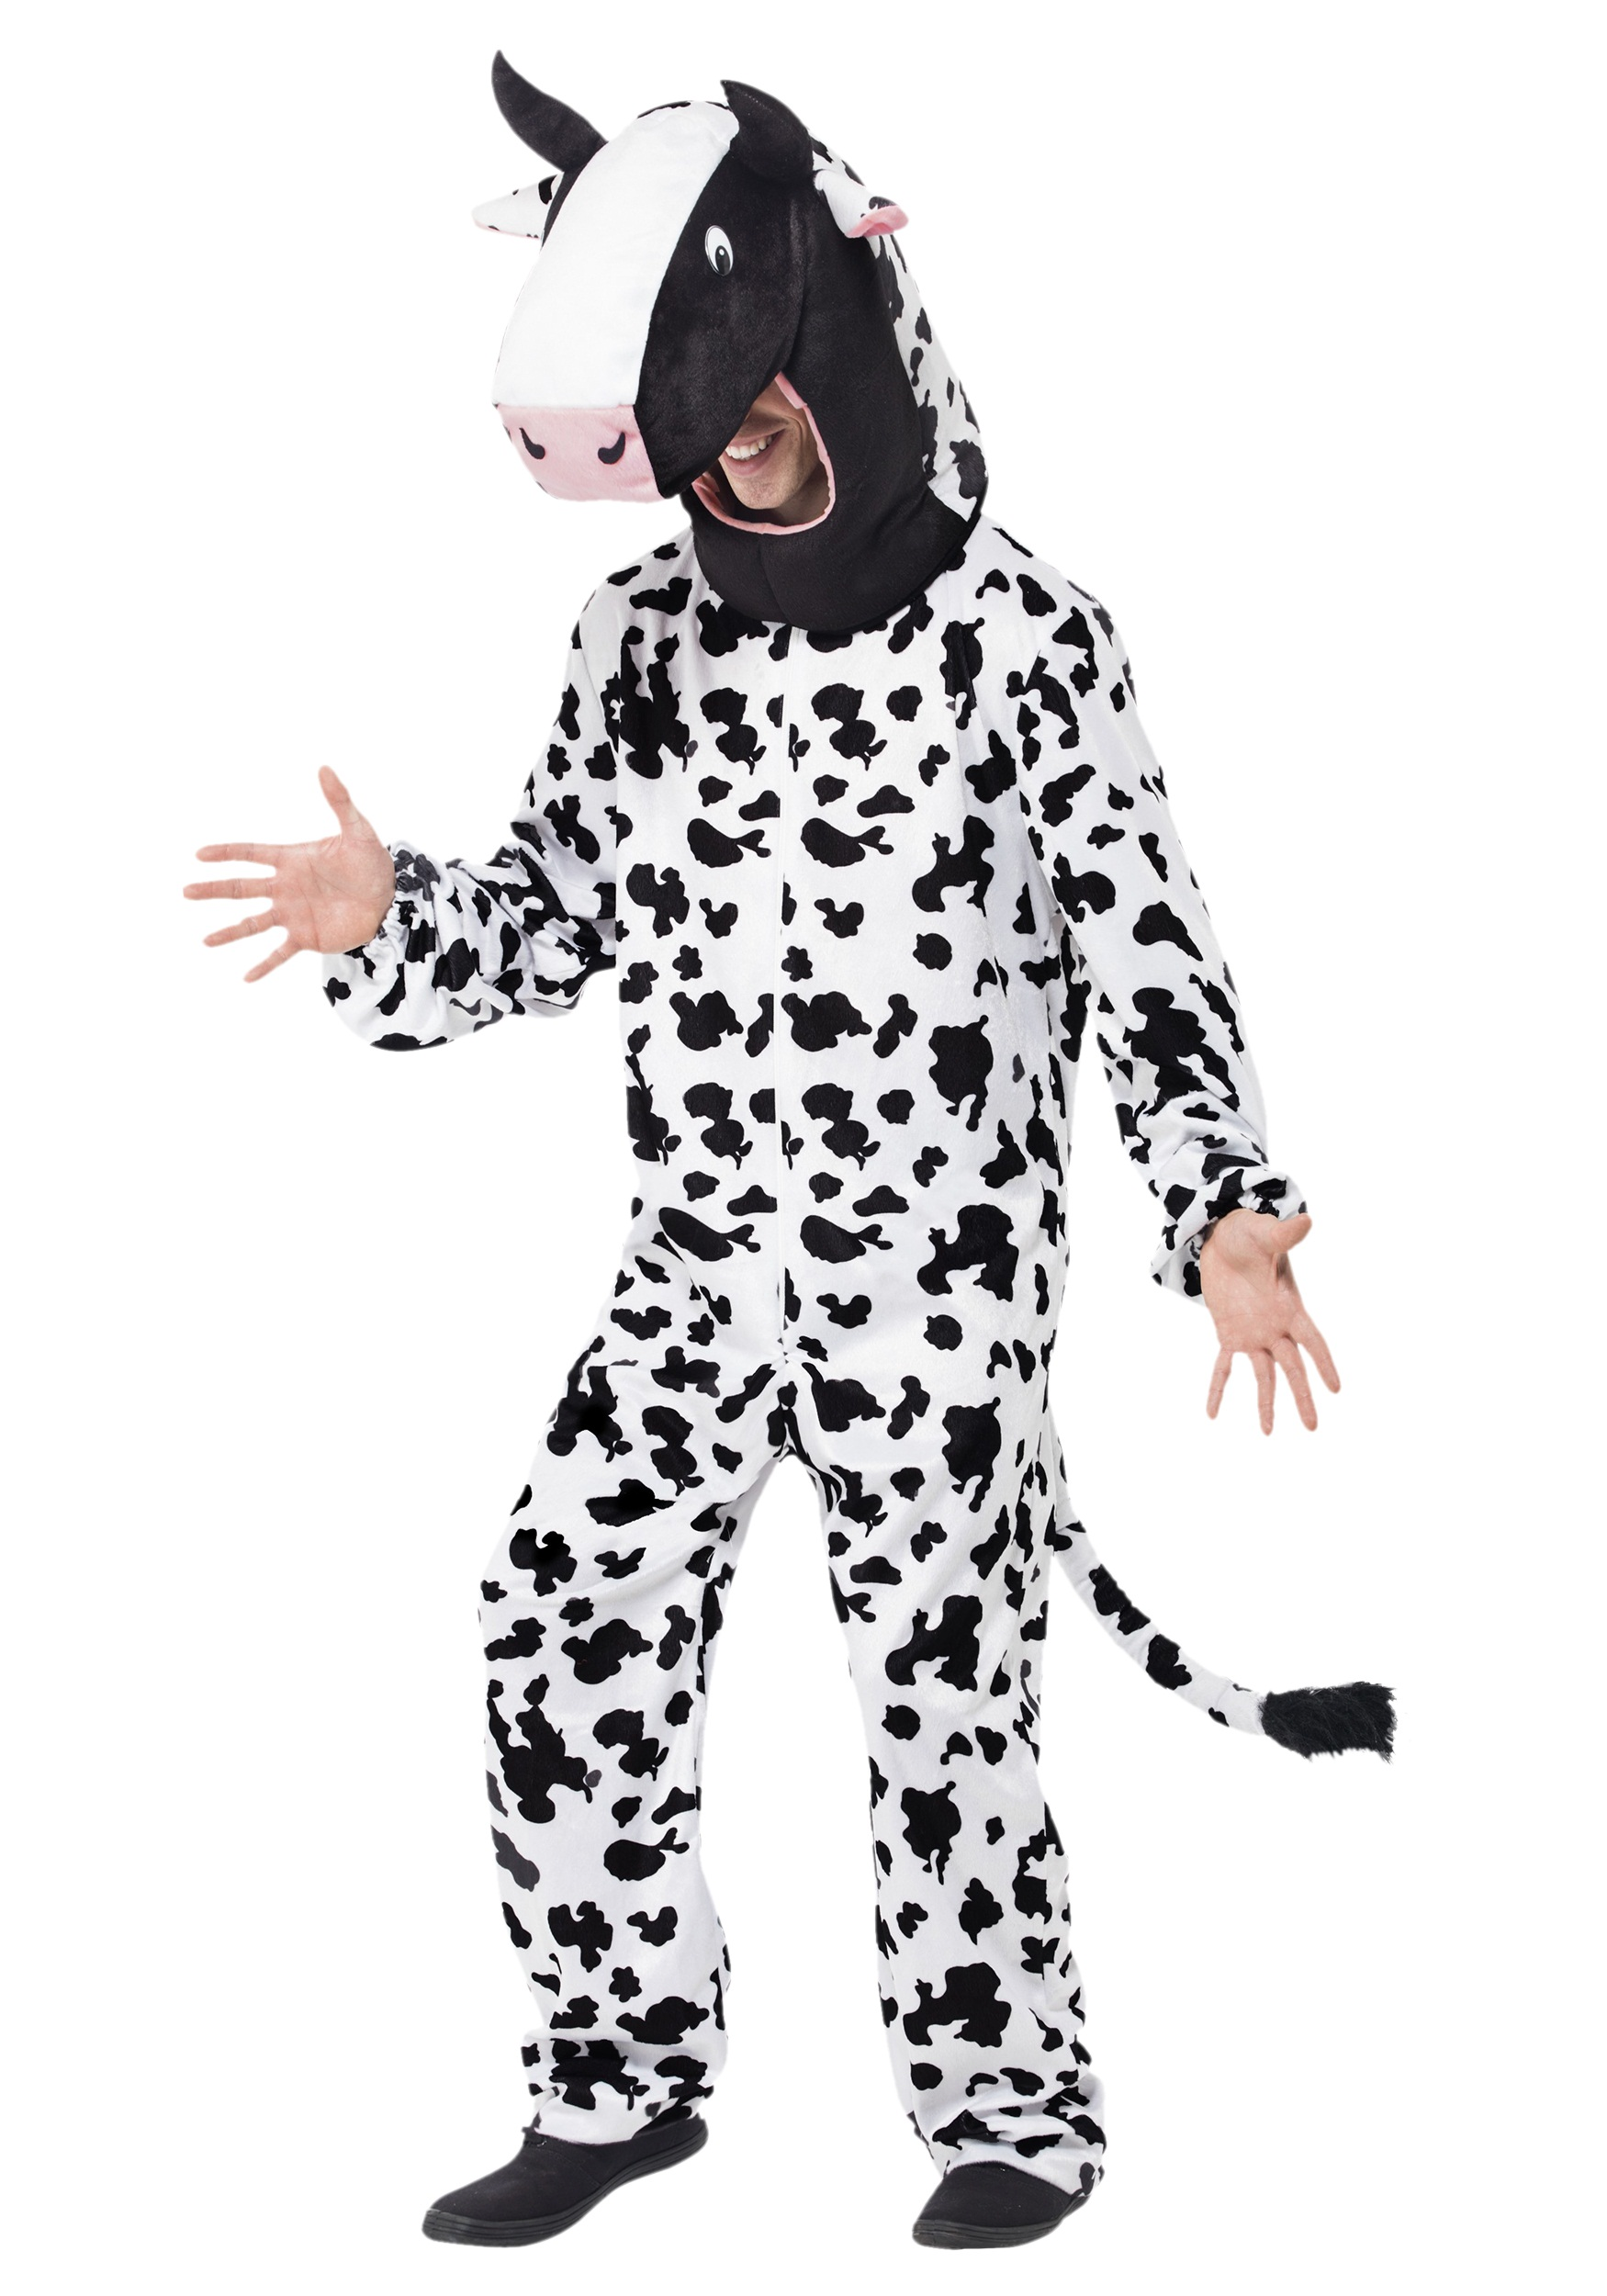 Cow Costumes & Blue Ox Costumes - HalloweenCostumes.com